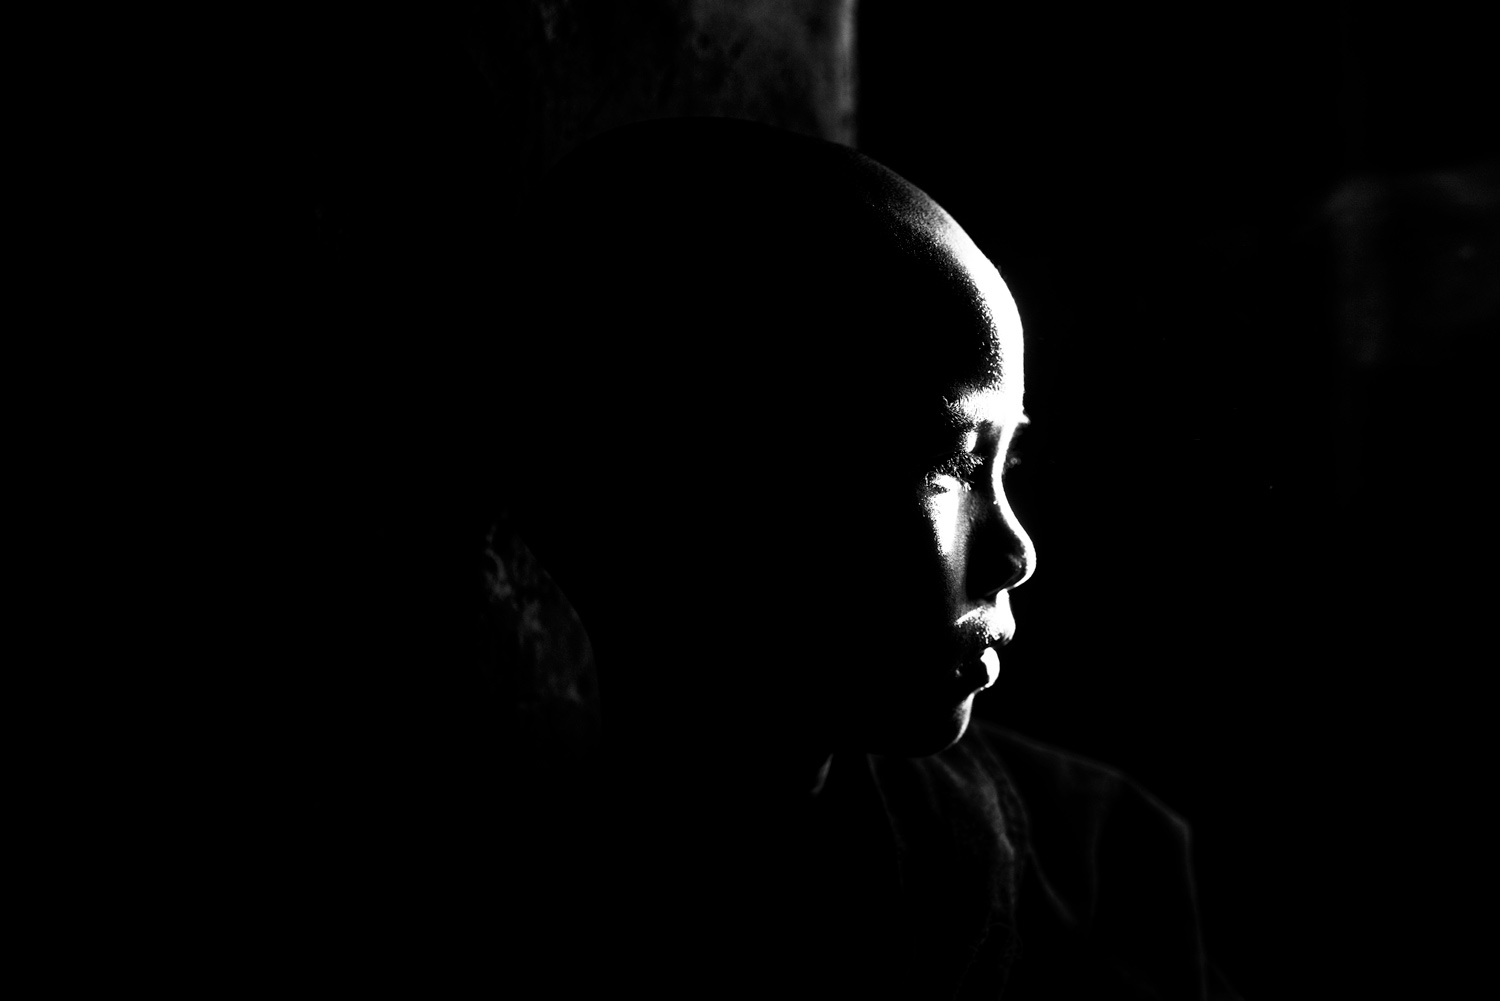 portrait of a novice monk, high contrast black and white